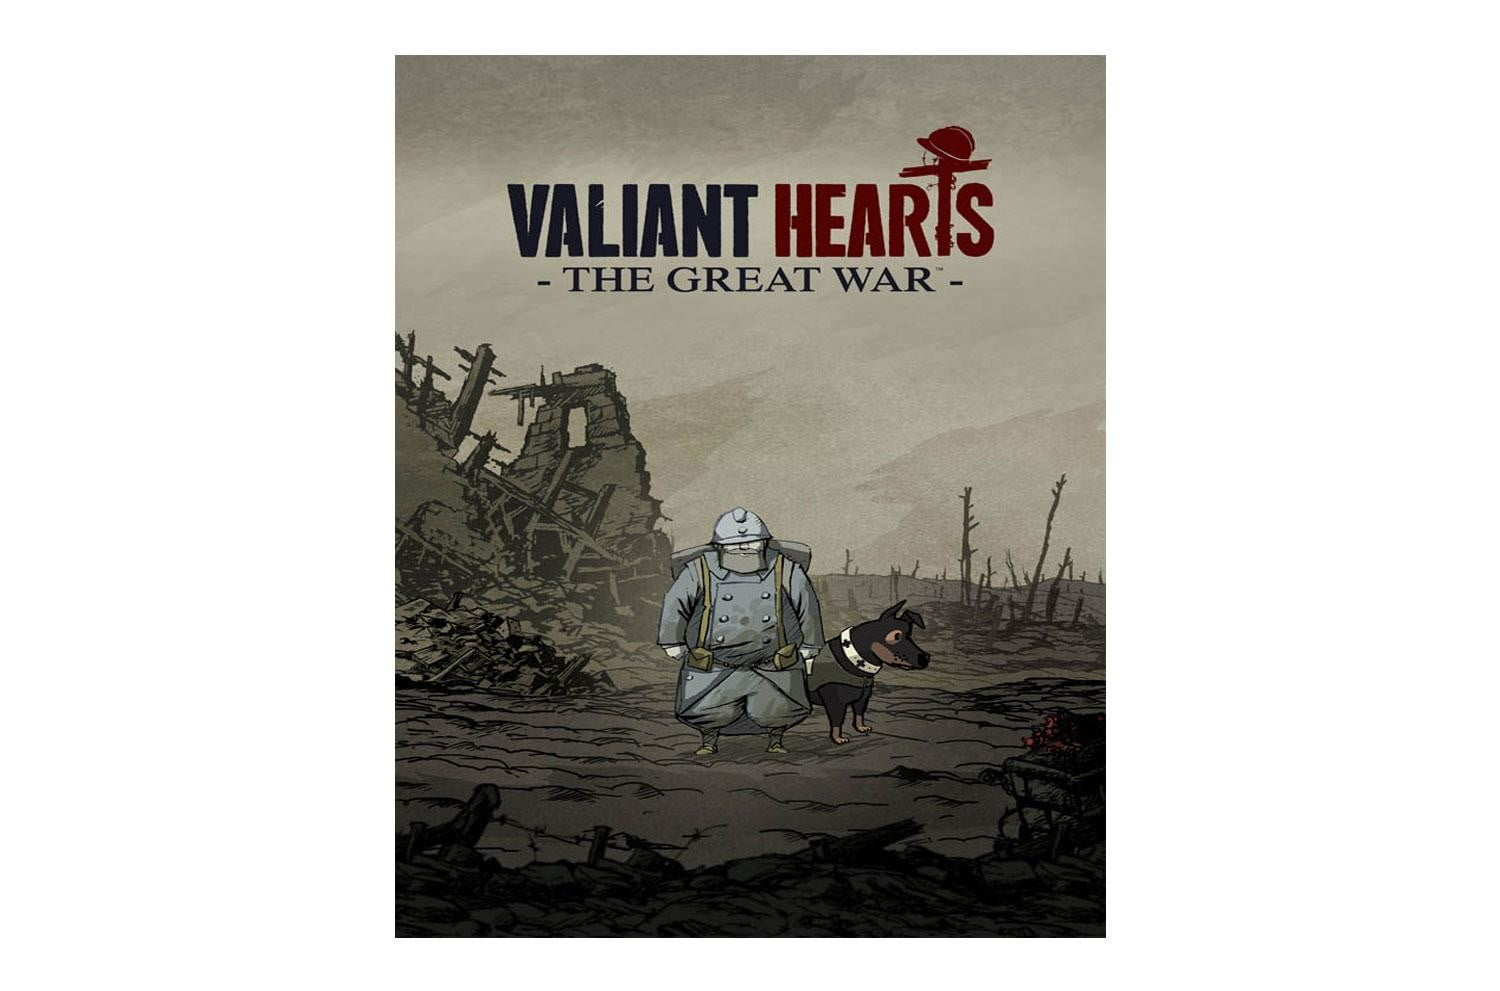 Valiant-Hearts-The-Great-War-cover-art